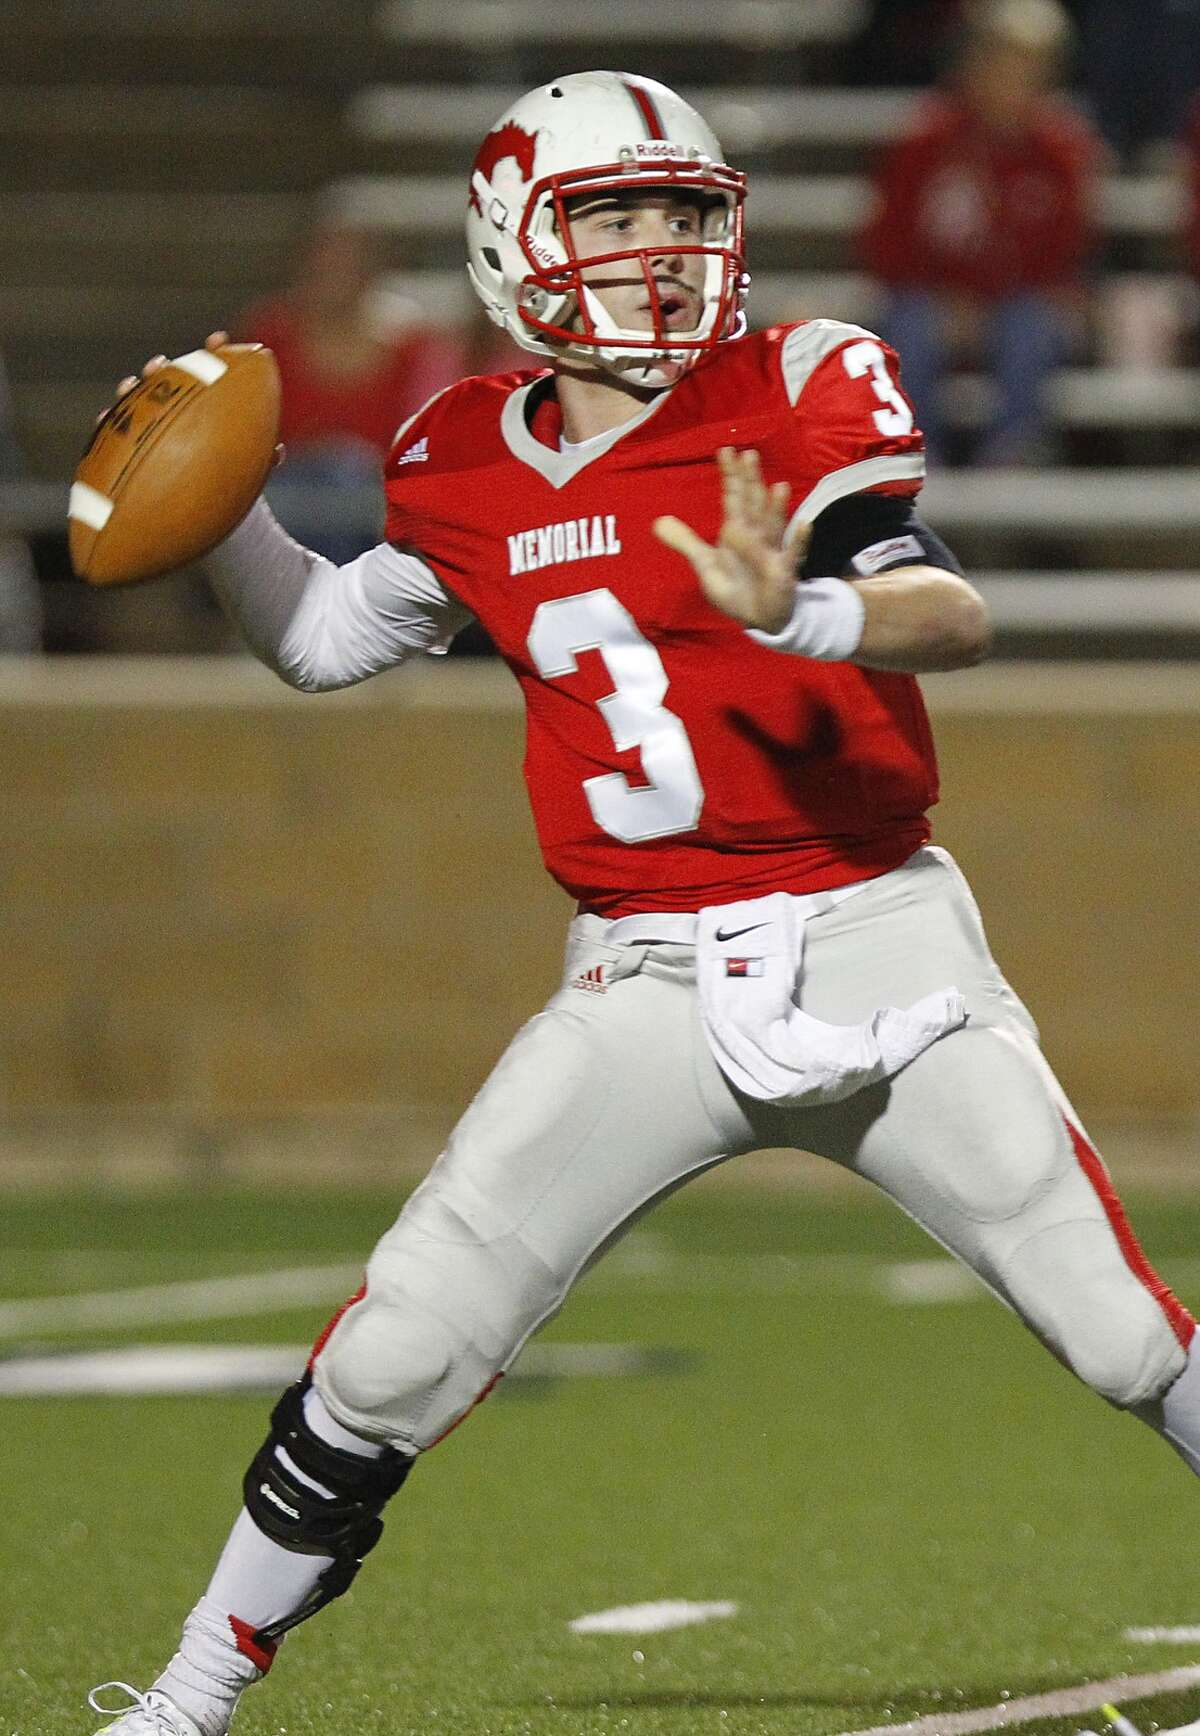 Houston Memorial quarterback Matthew Jordan looks for an open receiver as the Mustangs hosted the Katy Tigers in the 6A Region III Playoffs at Tully Stadium on November 21, 2014.